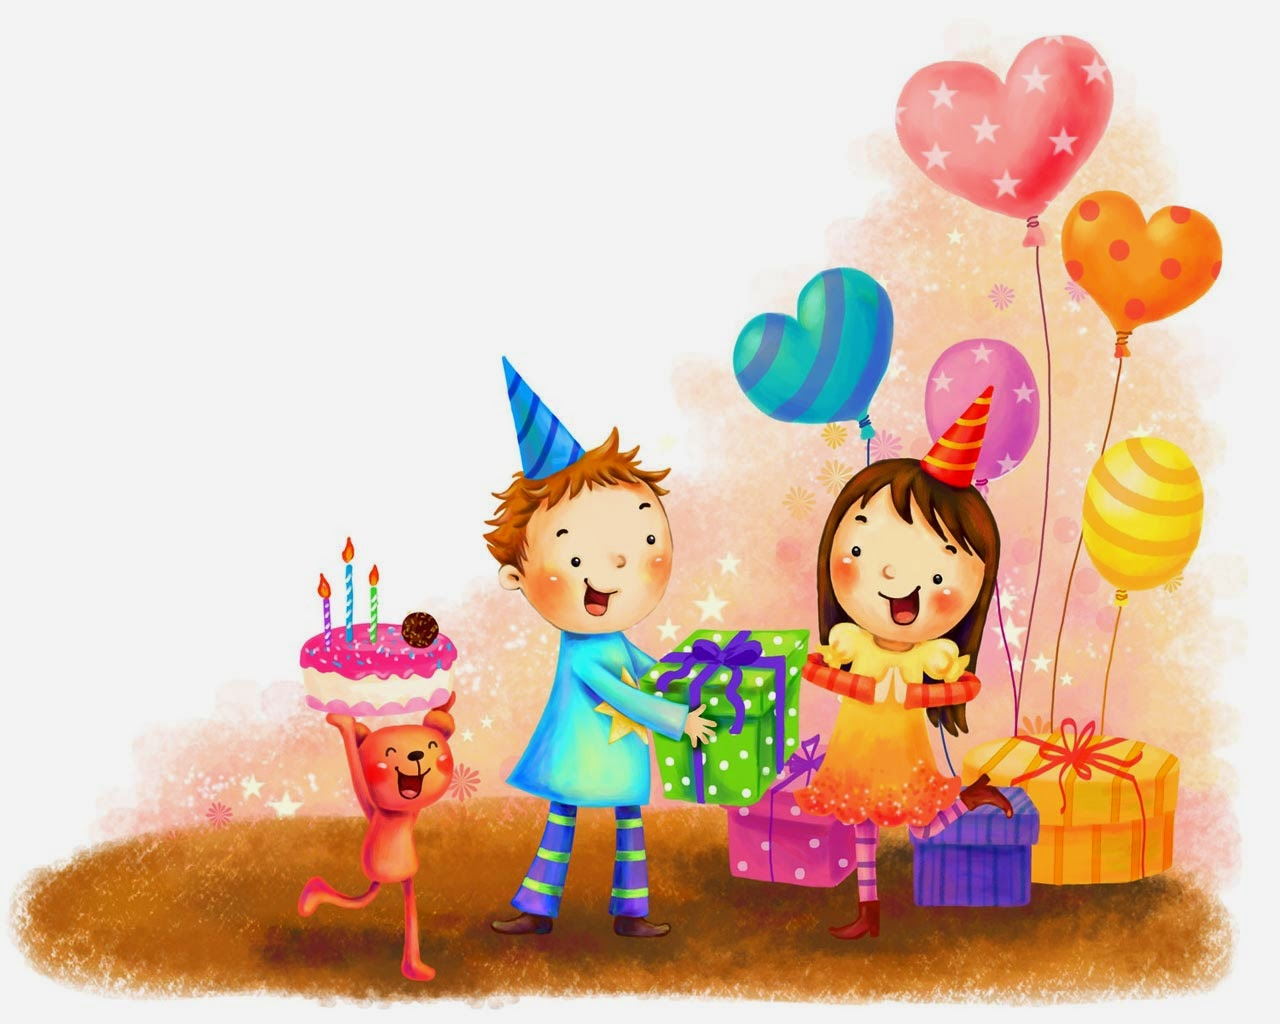 kids-celebrating-birthday-vector-images-pictures-wallpapers-1280x1024.jpg